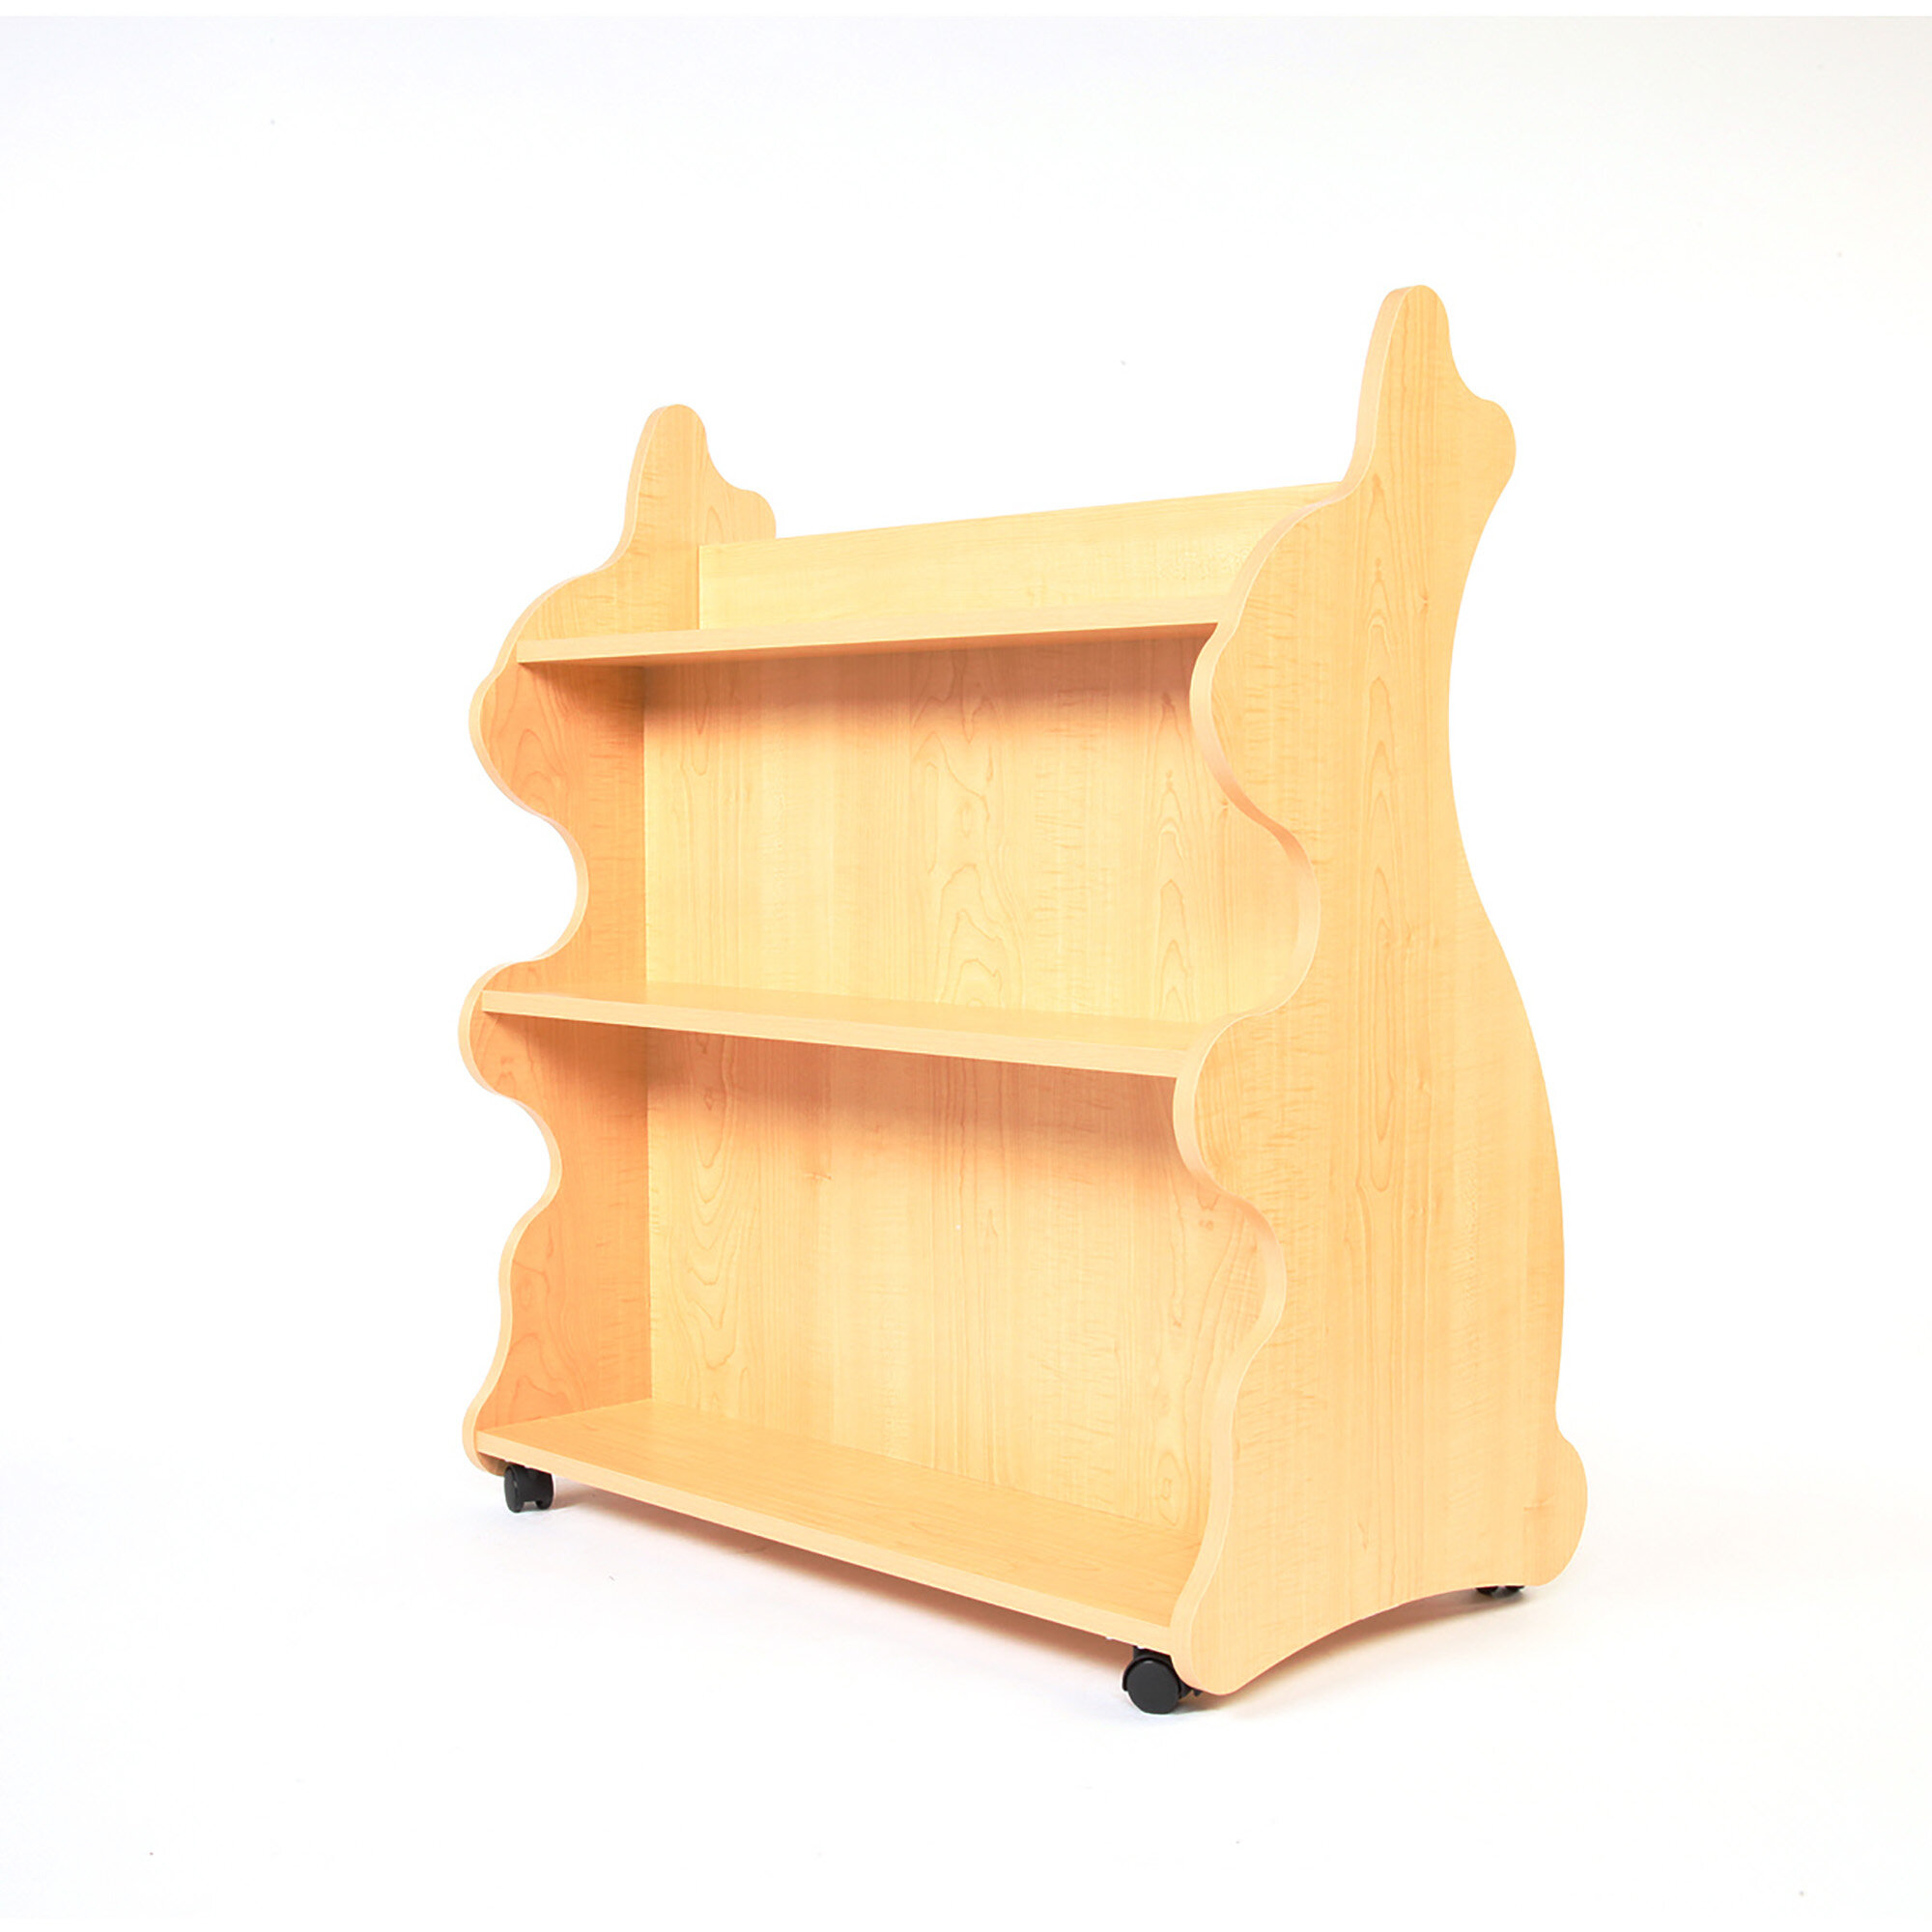 state auction october chandigarh of jeanneret library design the wright sided auctions double pierre central bookcase from